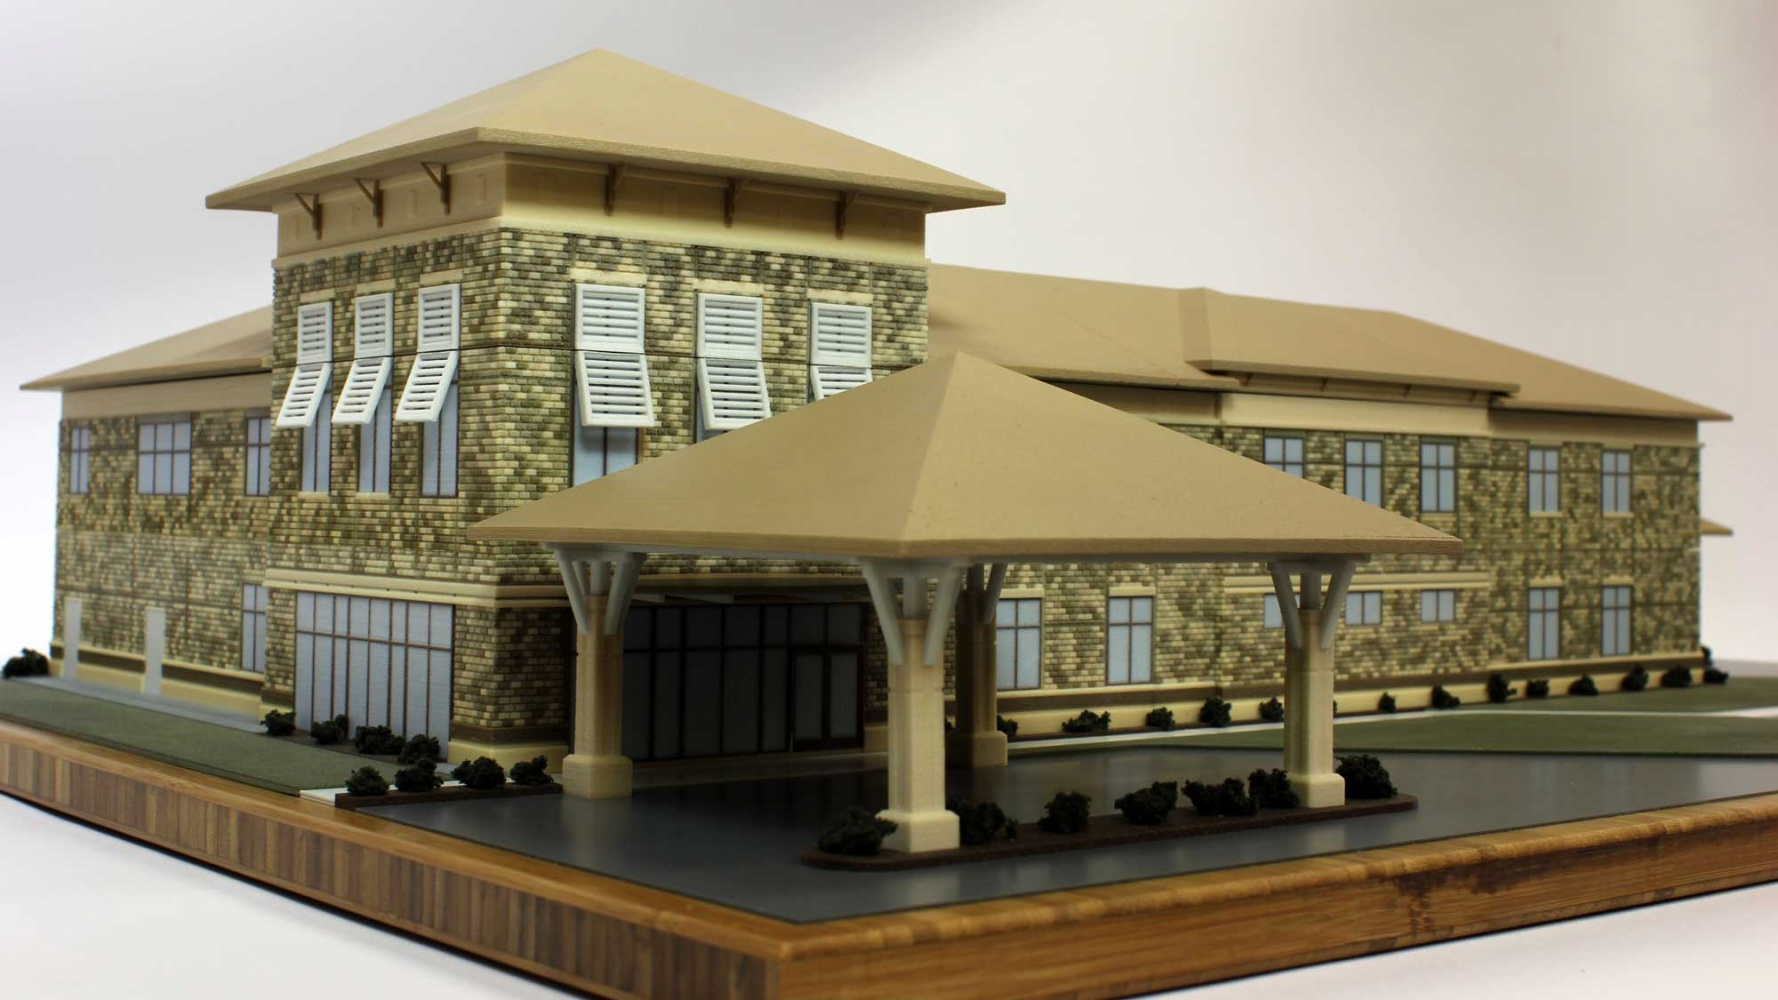 Architectural model with color brick texture